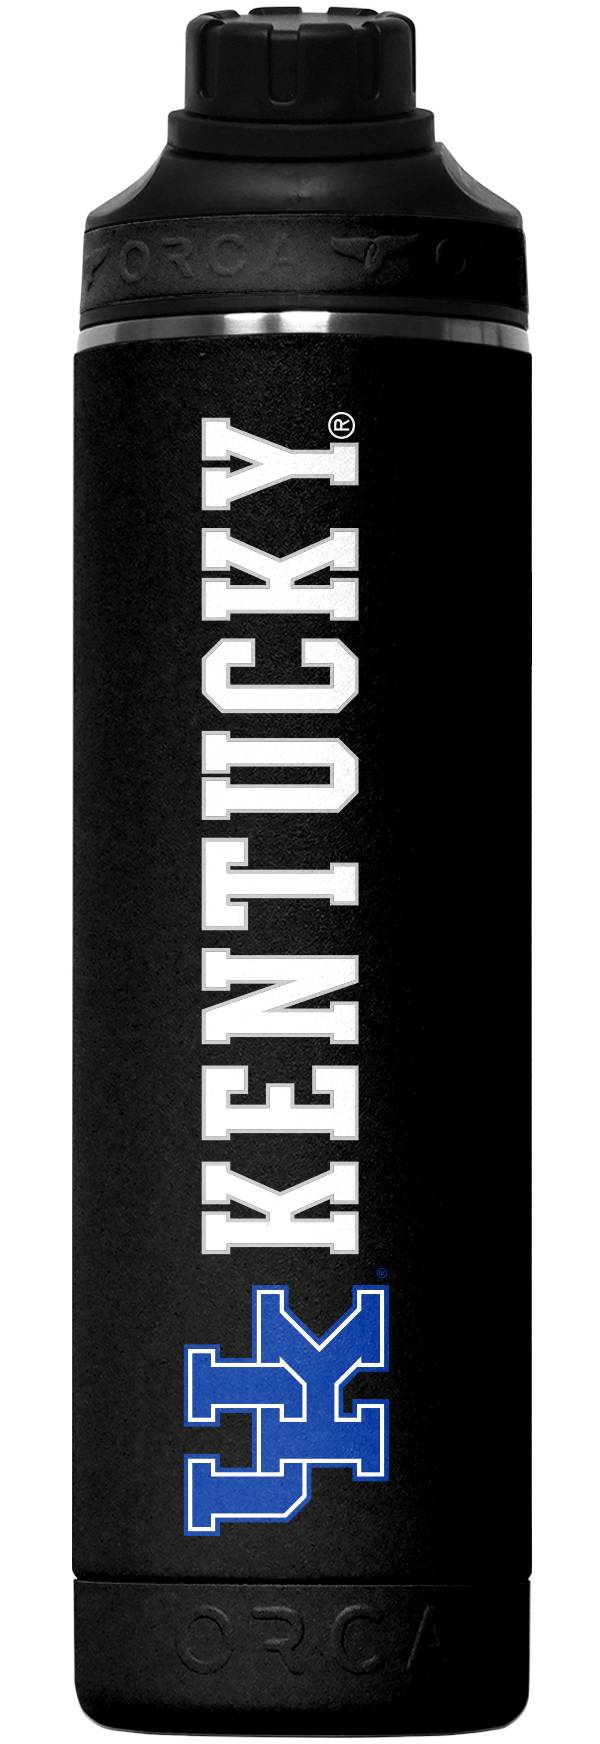 ORCA Kentucky Wildcats 22 oz. Blackout Hydra Water Bottle product image